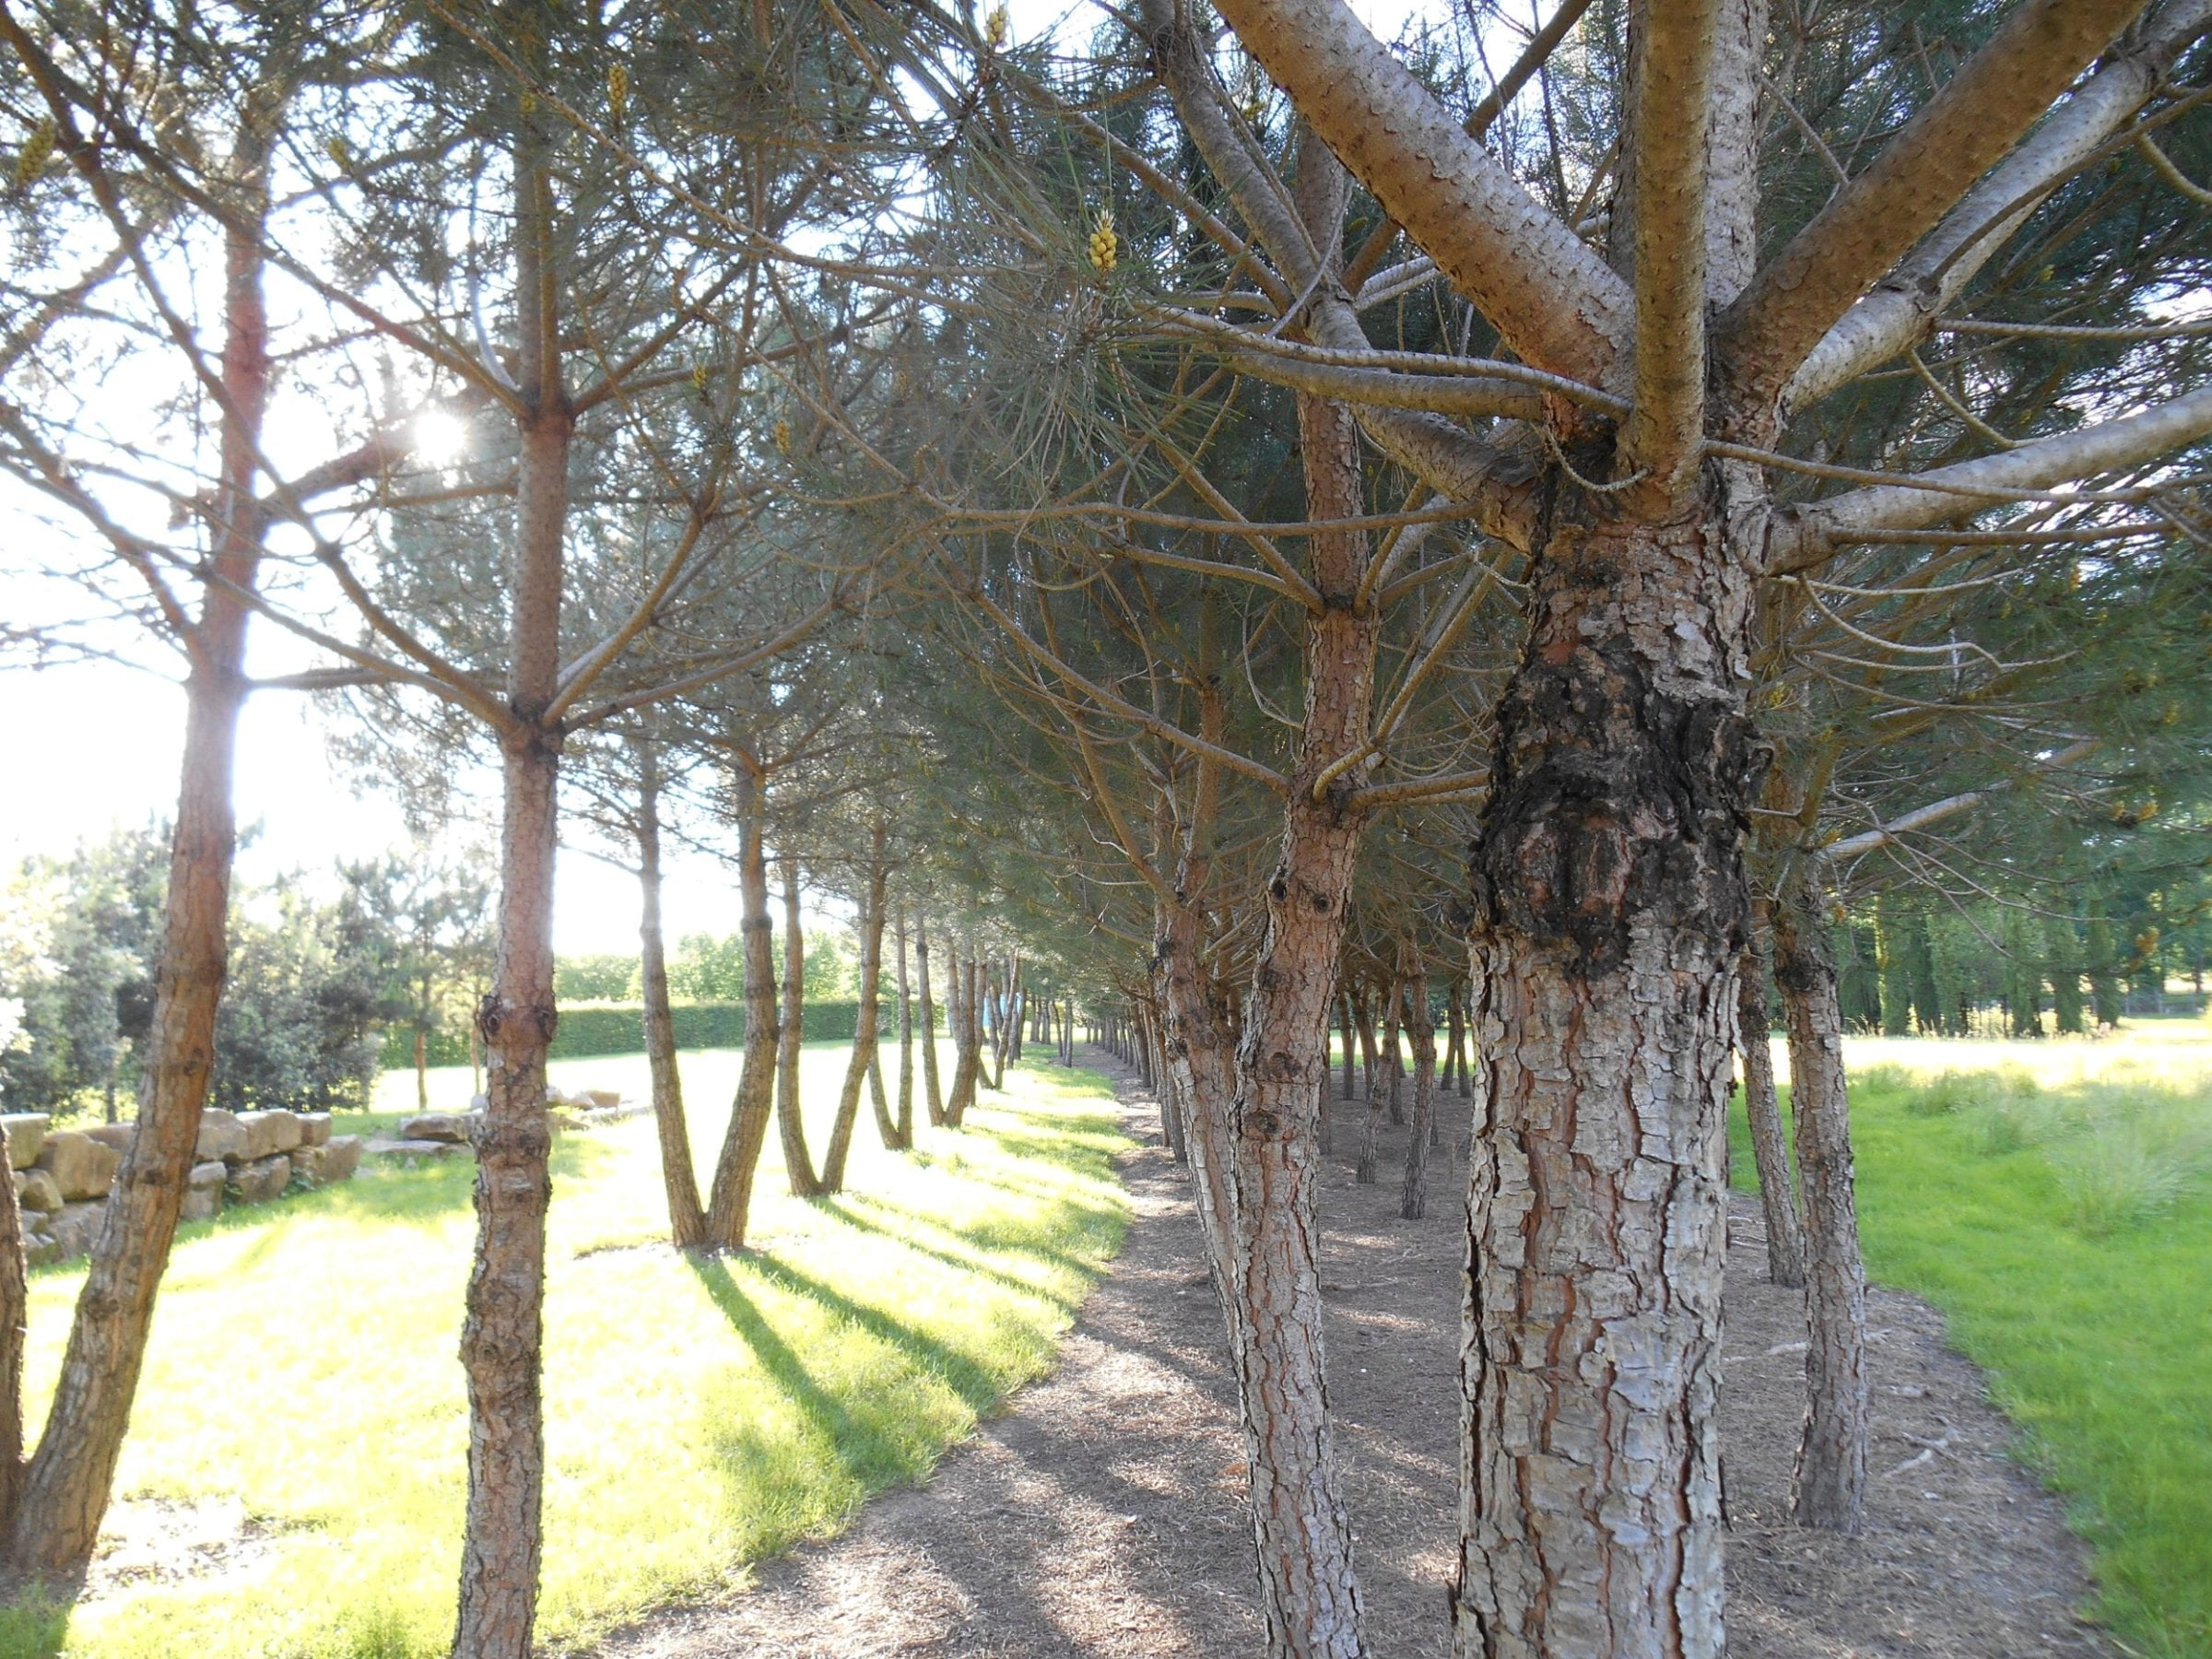 5a_Imagining_the_lime_trees_overlooking_the_Royal_Palace_Gardens_Paris